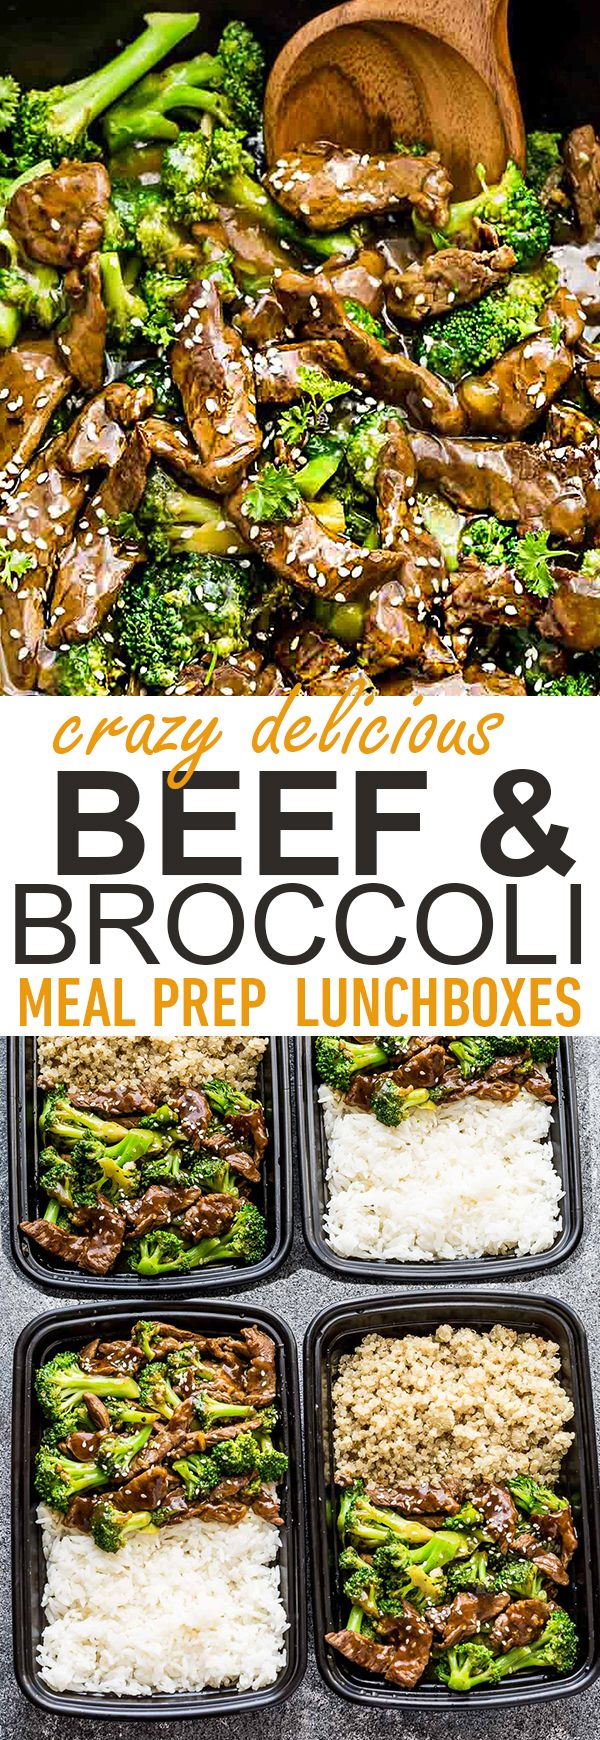 This Skinny Beef and Broccoli Stir-Fry makes the perfect easy weeknight dish full of authentic flavors. Best of all, it's so easy to make and is way better and healthier than your favorite Chinese takeout restaurant. Great for meal prep Sunday and leftovers can be used for work or school lunch bowls! #takeoutfakeout #dinner #mealprep #lunchboxes #beef #broccoli